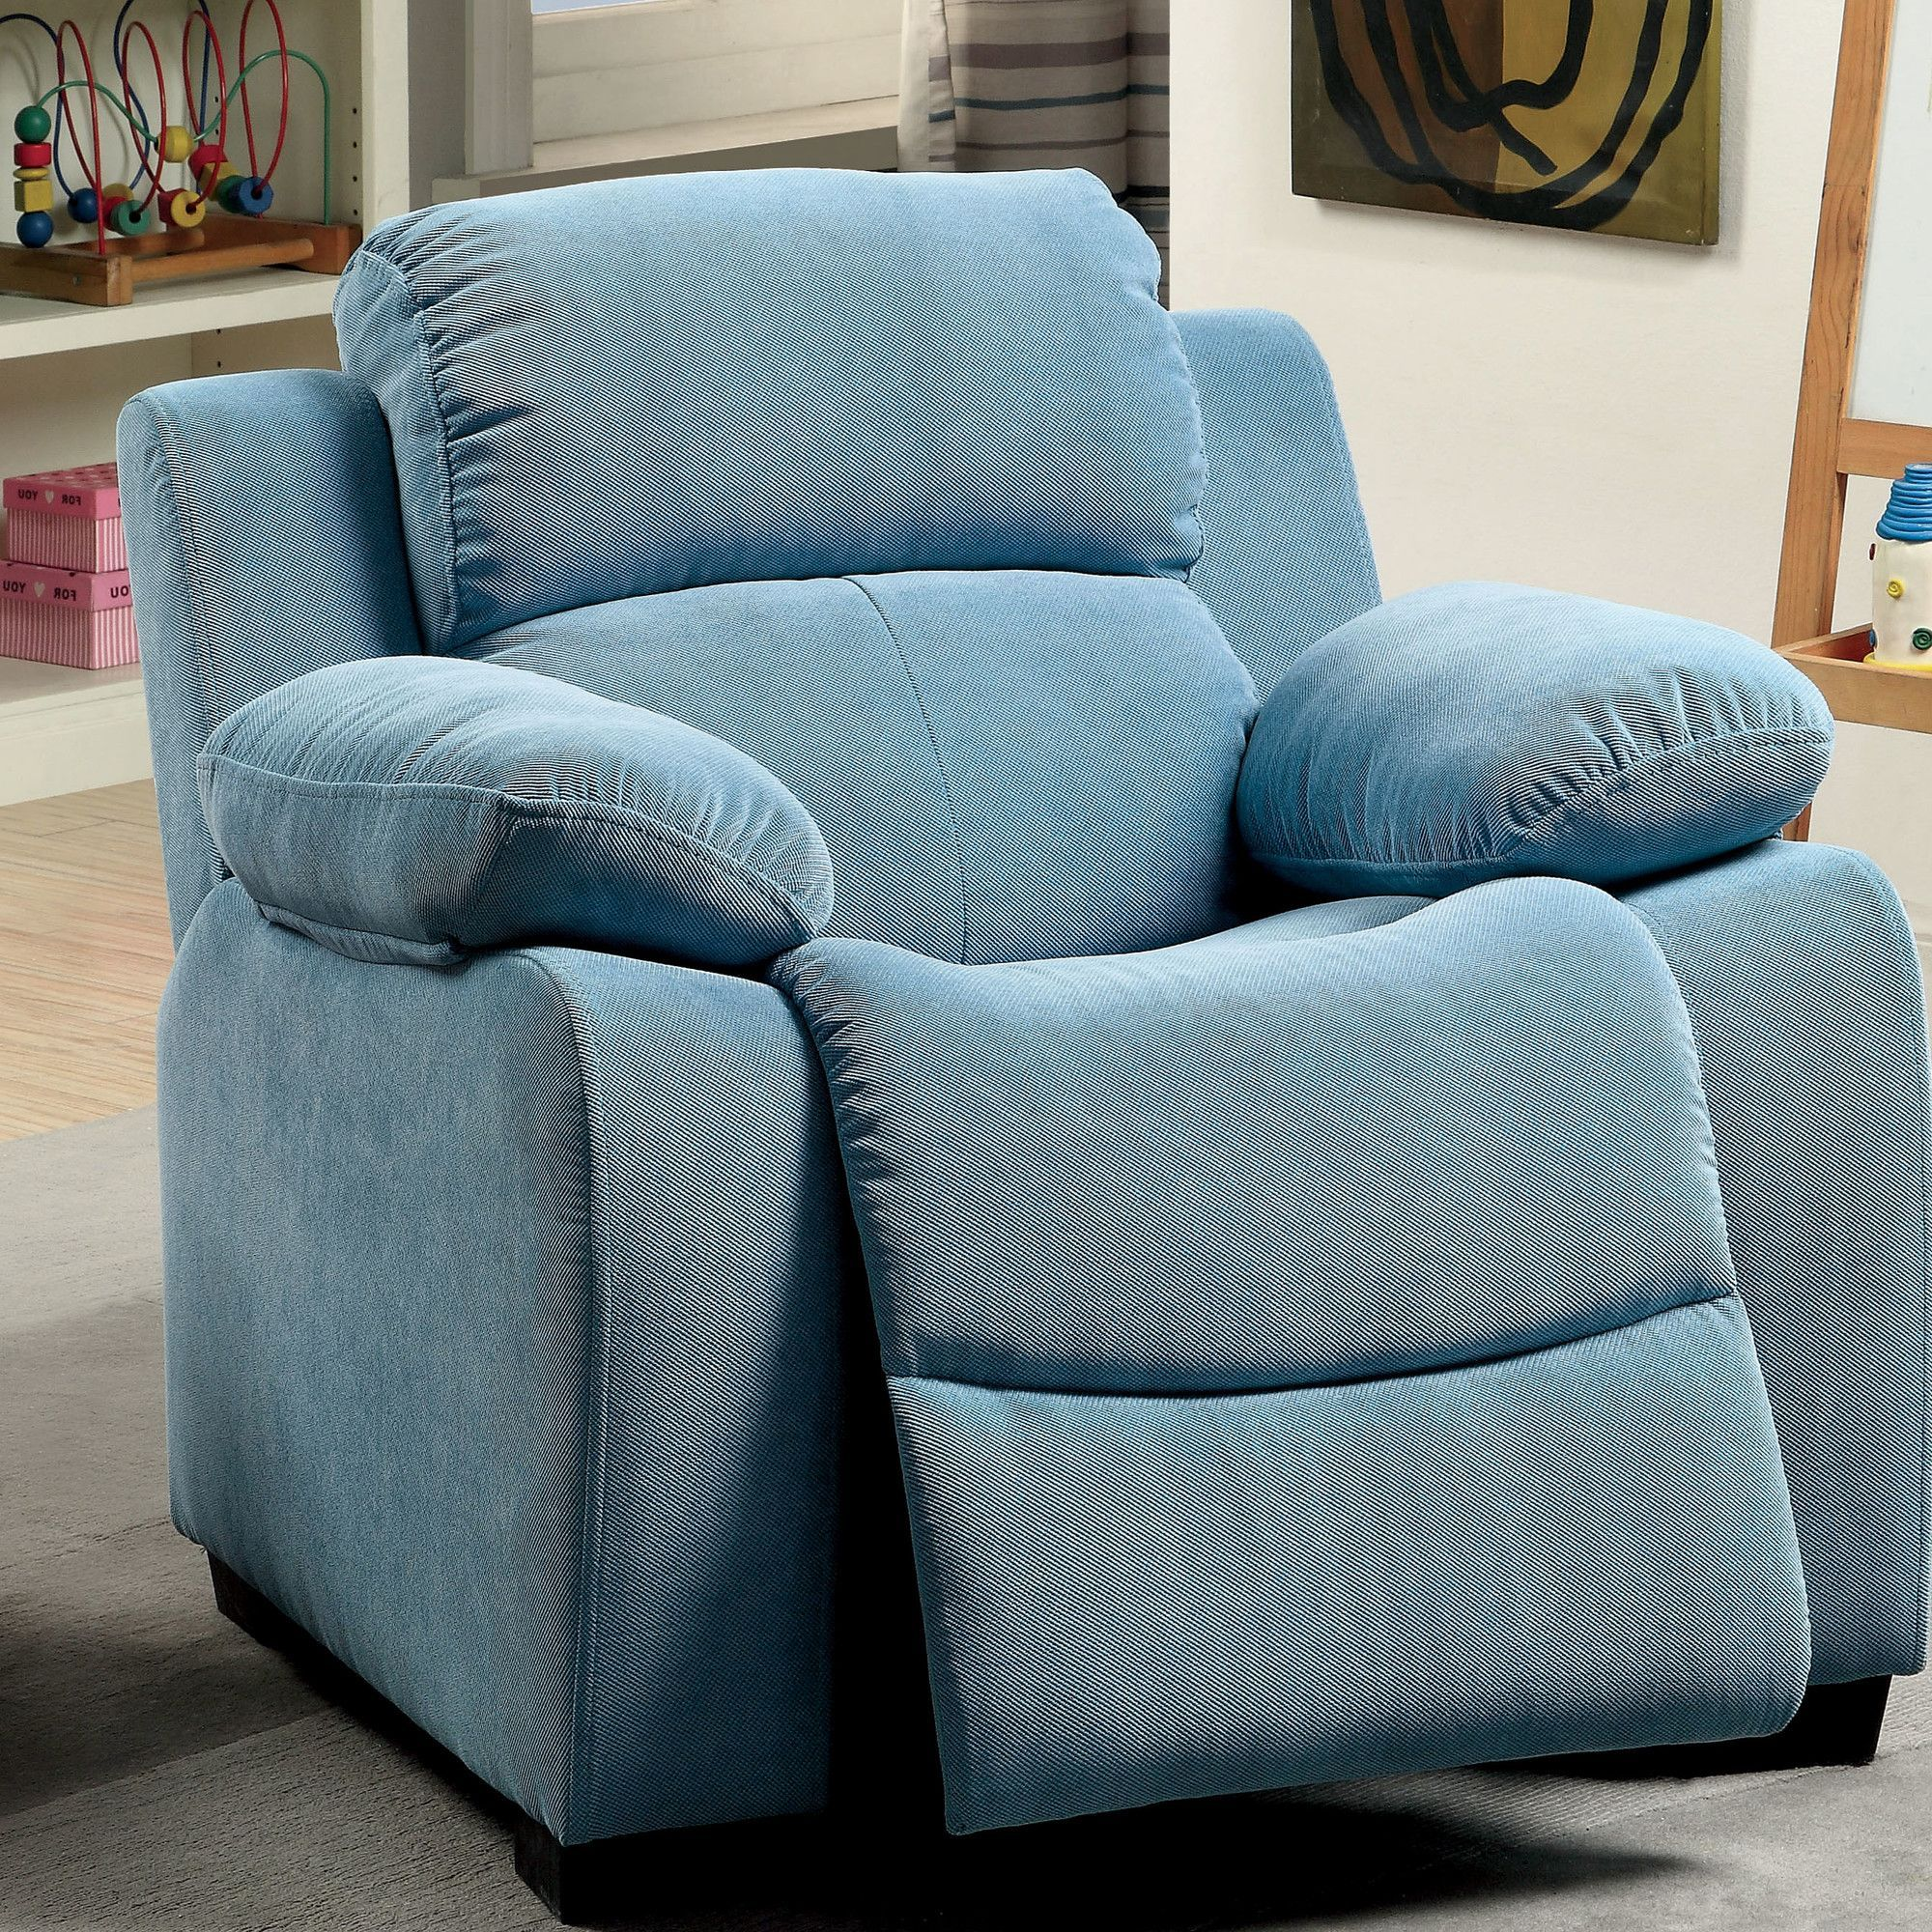 Cinco Bayou Kids Recliner with Storage partment